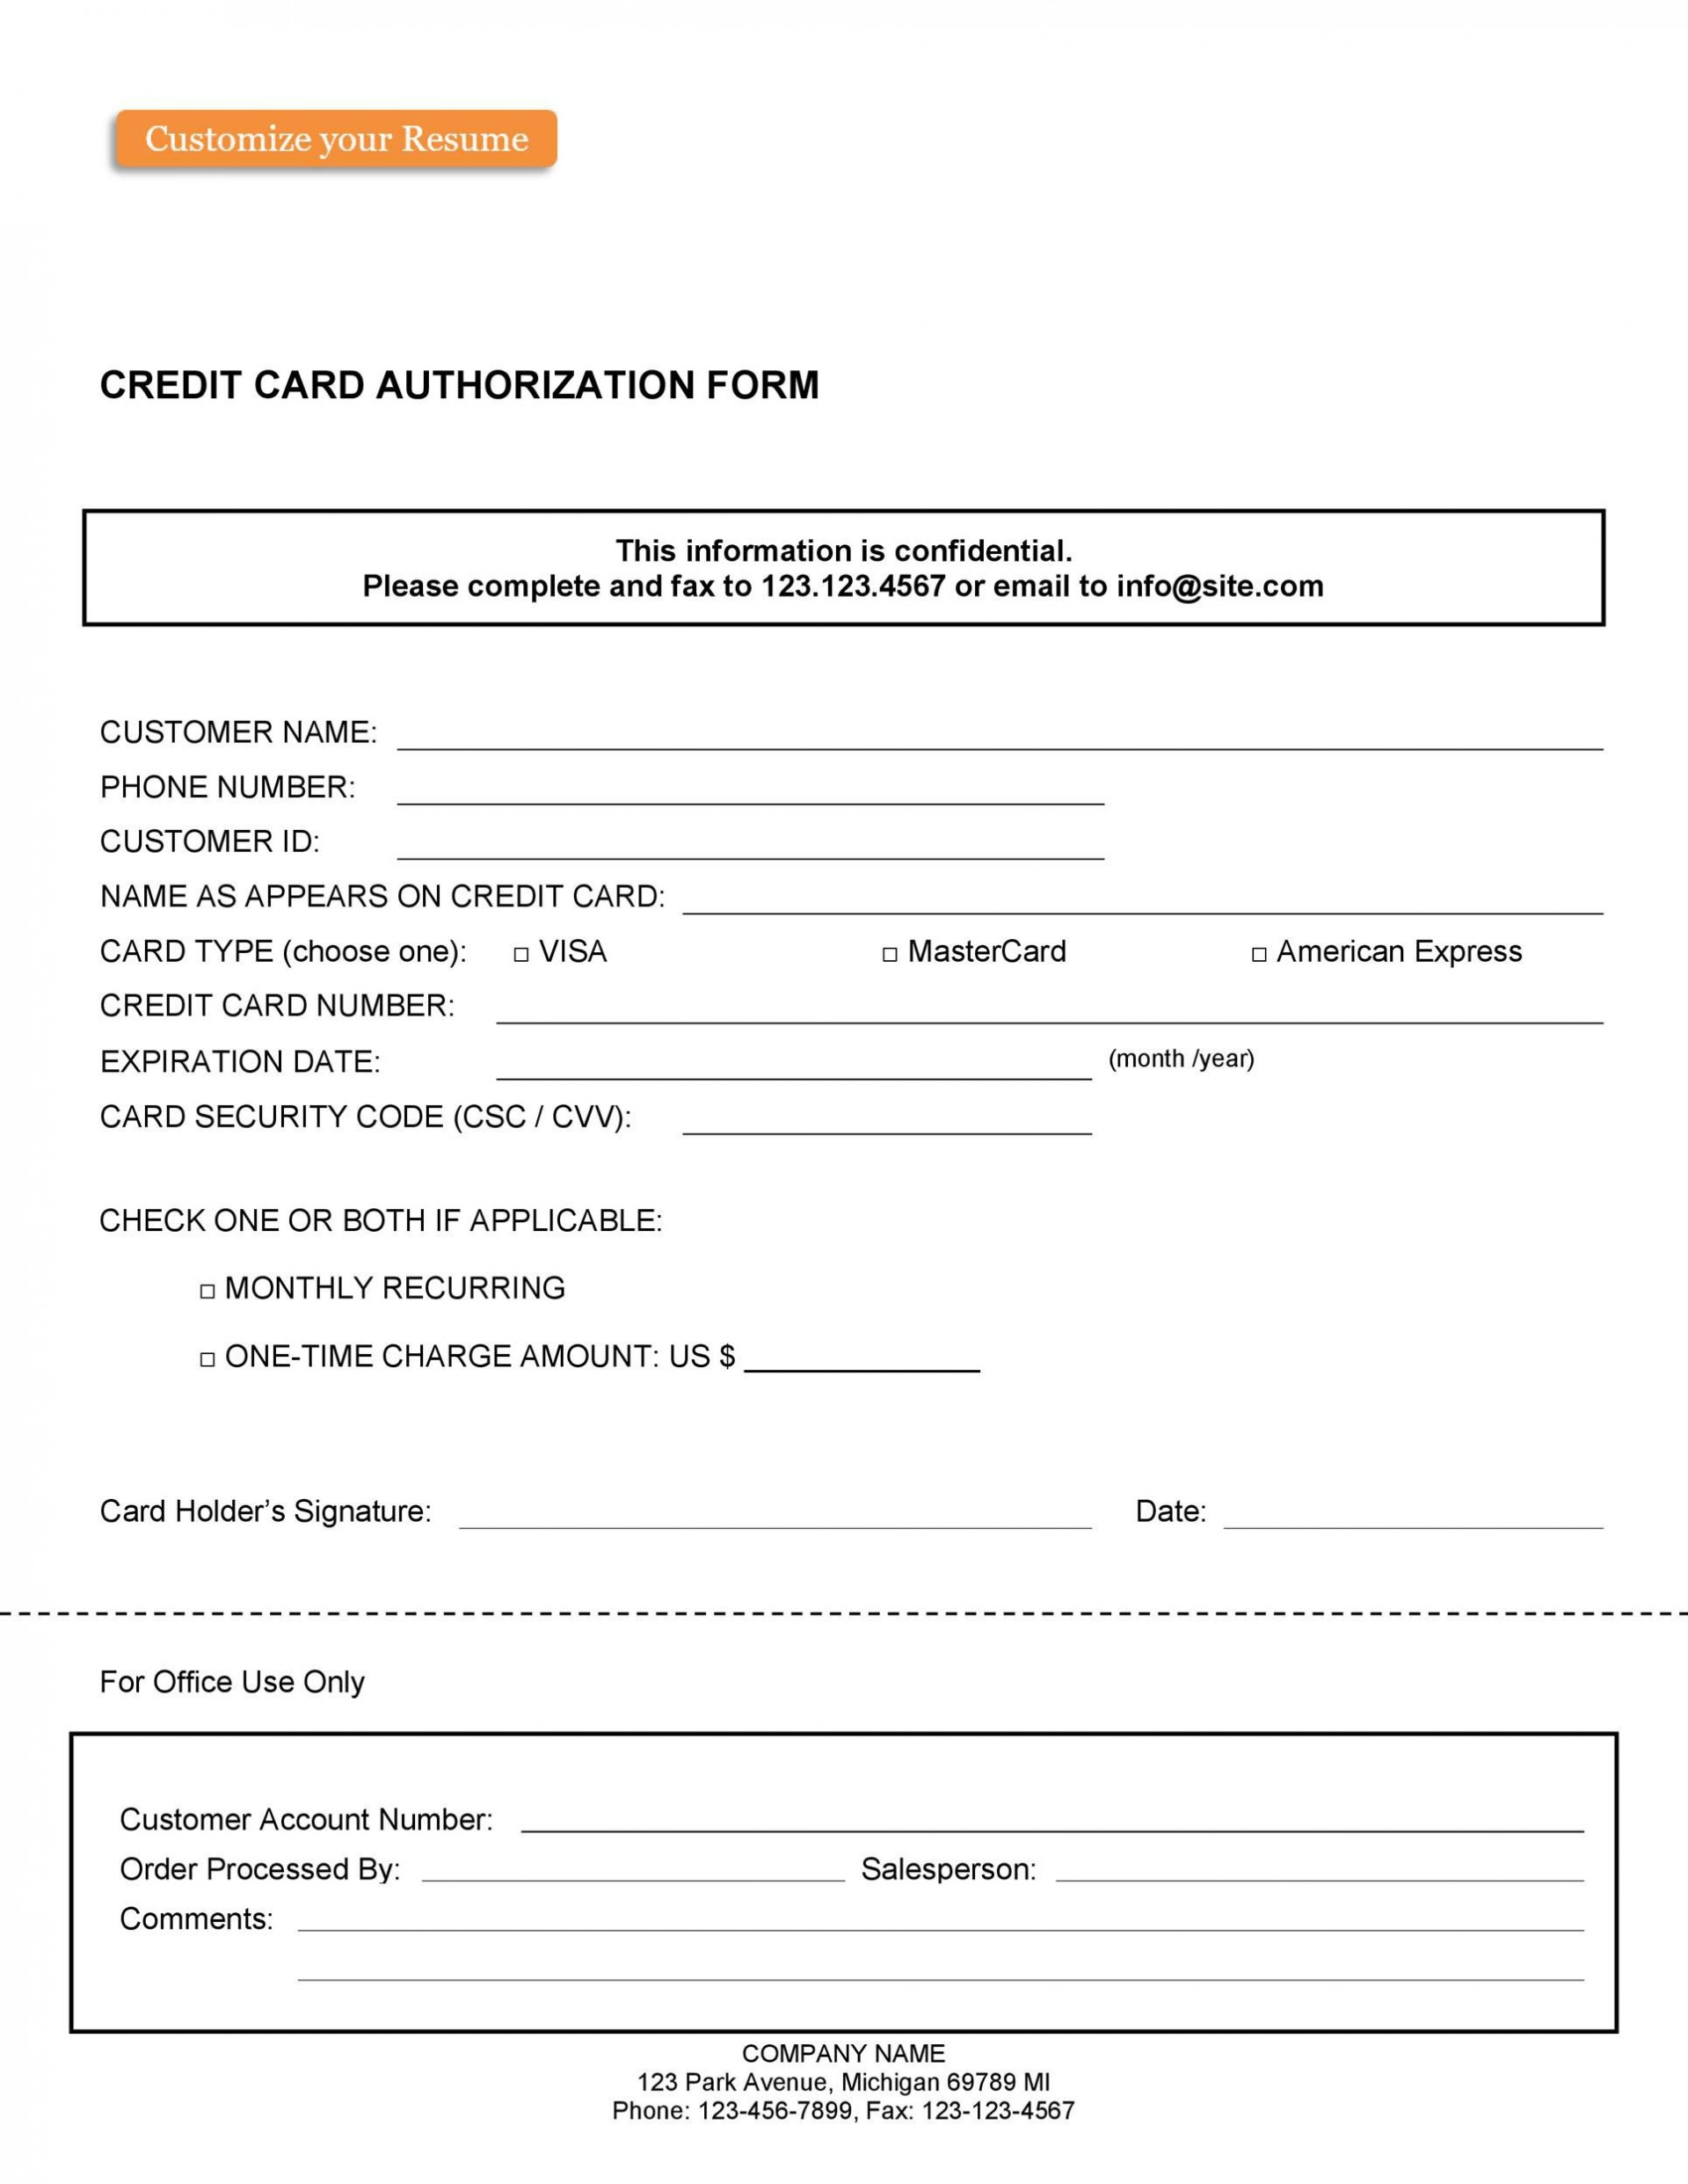 003 Unusual Credit Card Usage Request Form Template Example 1920